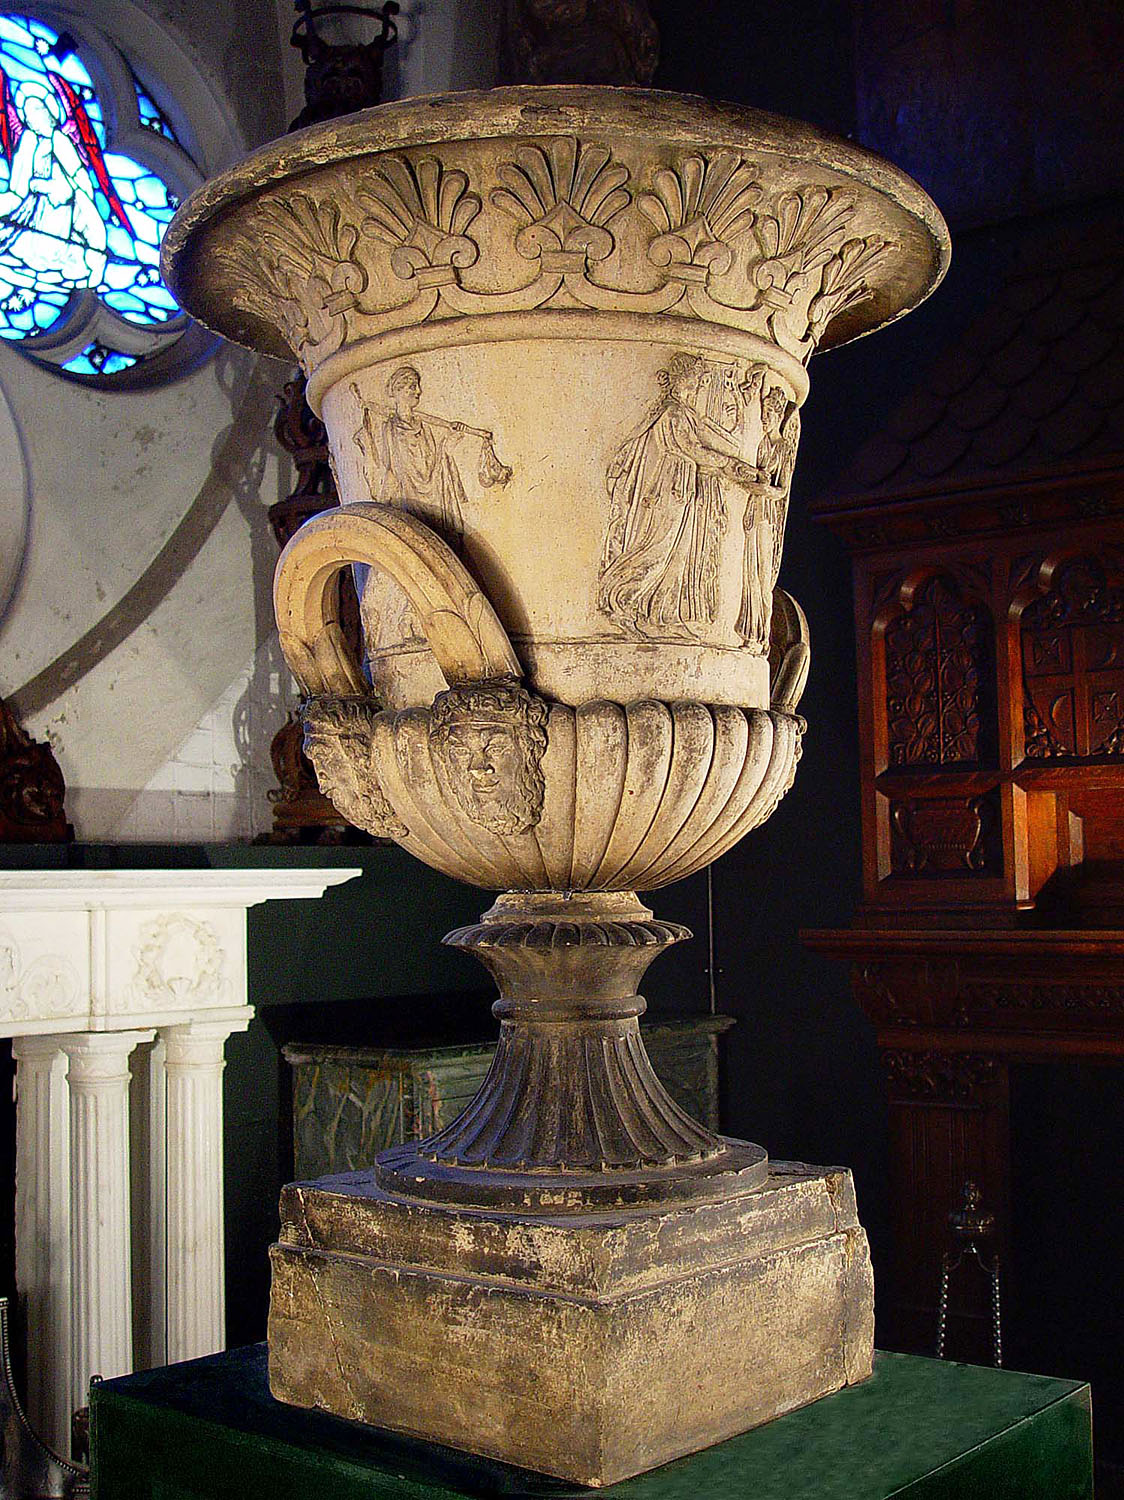 A large Greek Revival style antique terracotta campana urn